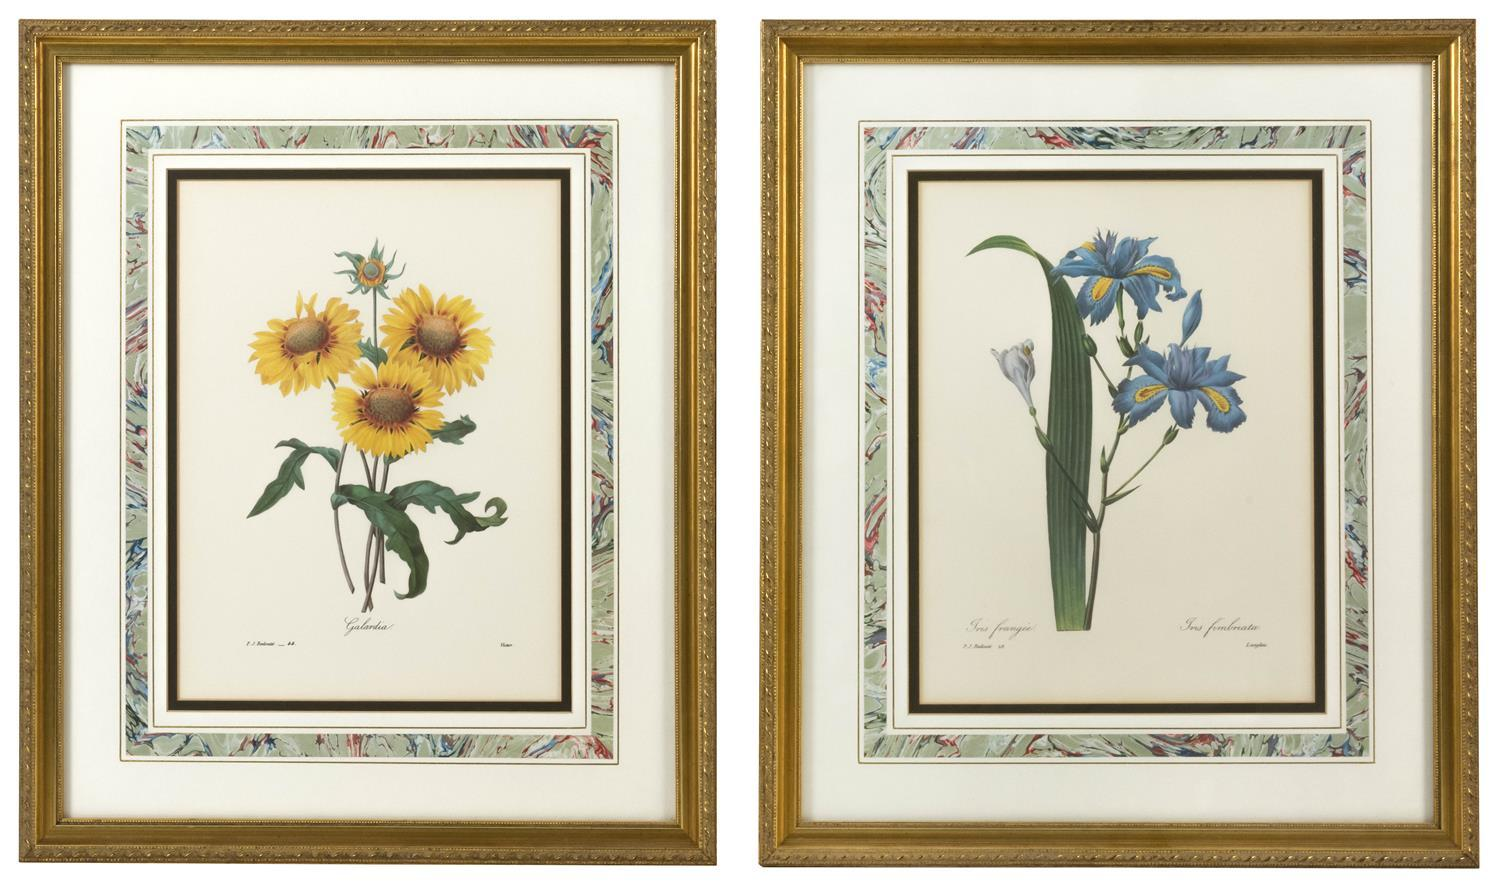 """AFTER PIERRE-JOSEPH REDOUTÉ, France, 1859-1840, Two lithographs: """"Iris"""" and """"Galardia""""., 12.5"""" x 9.5"""" sight. Framed 20.25"""" x 17.25""""."""